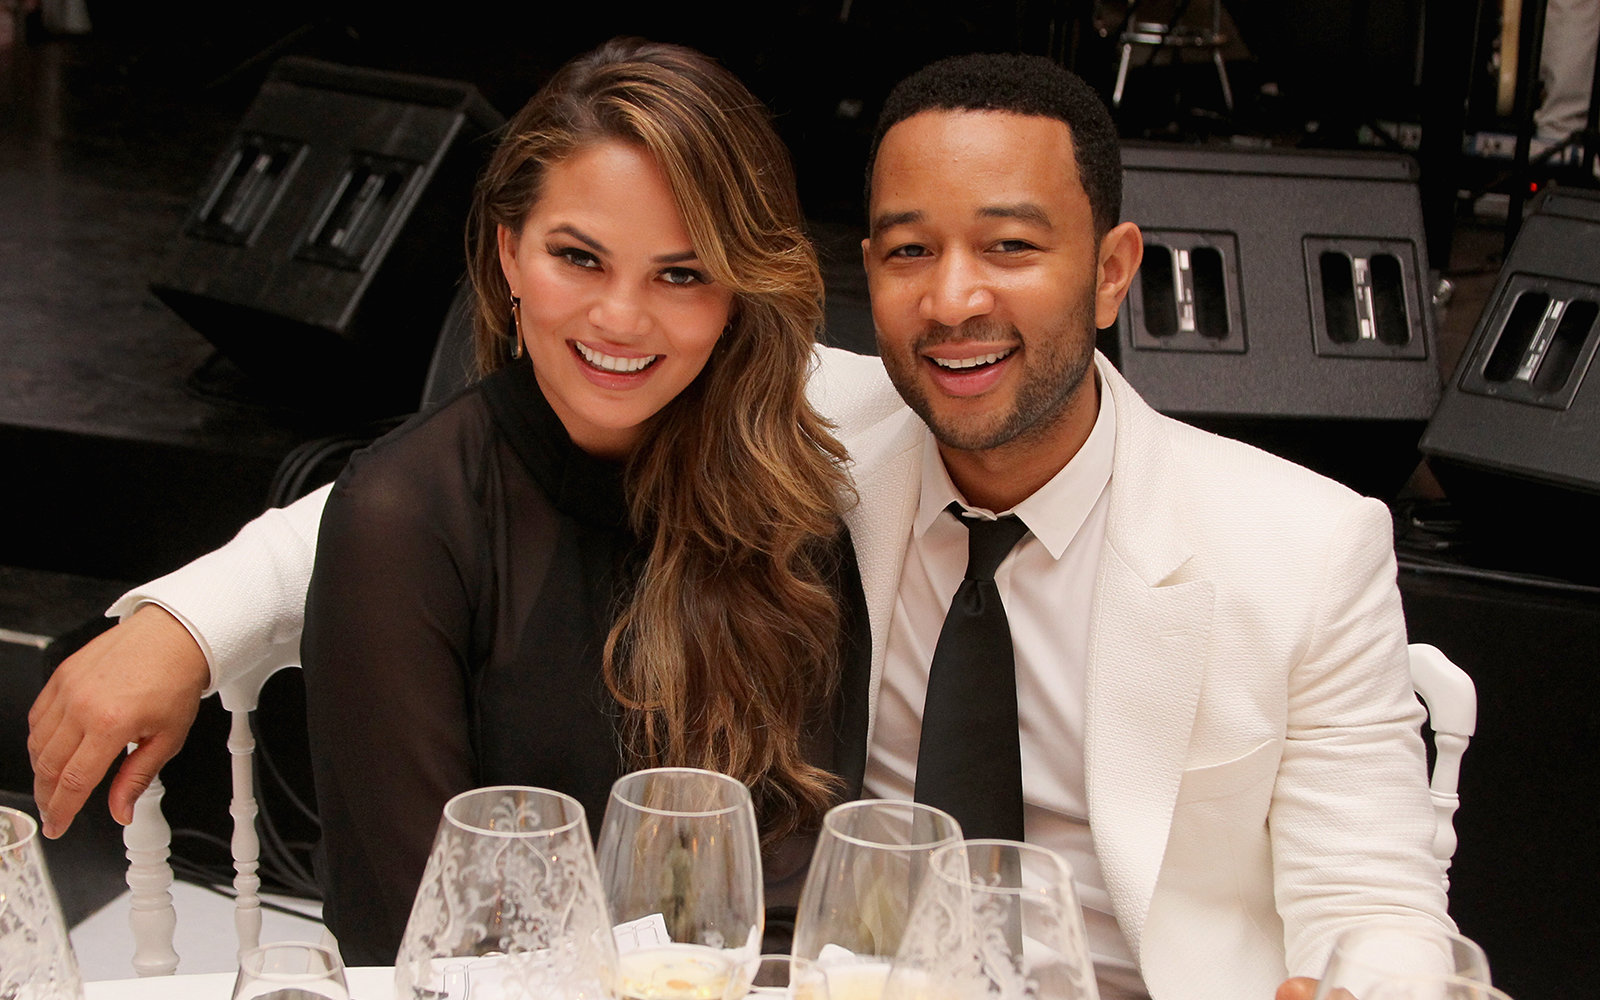 Chrissy Tiegan and John Legend